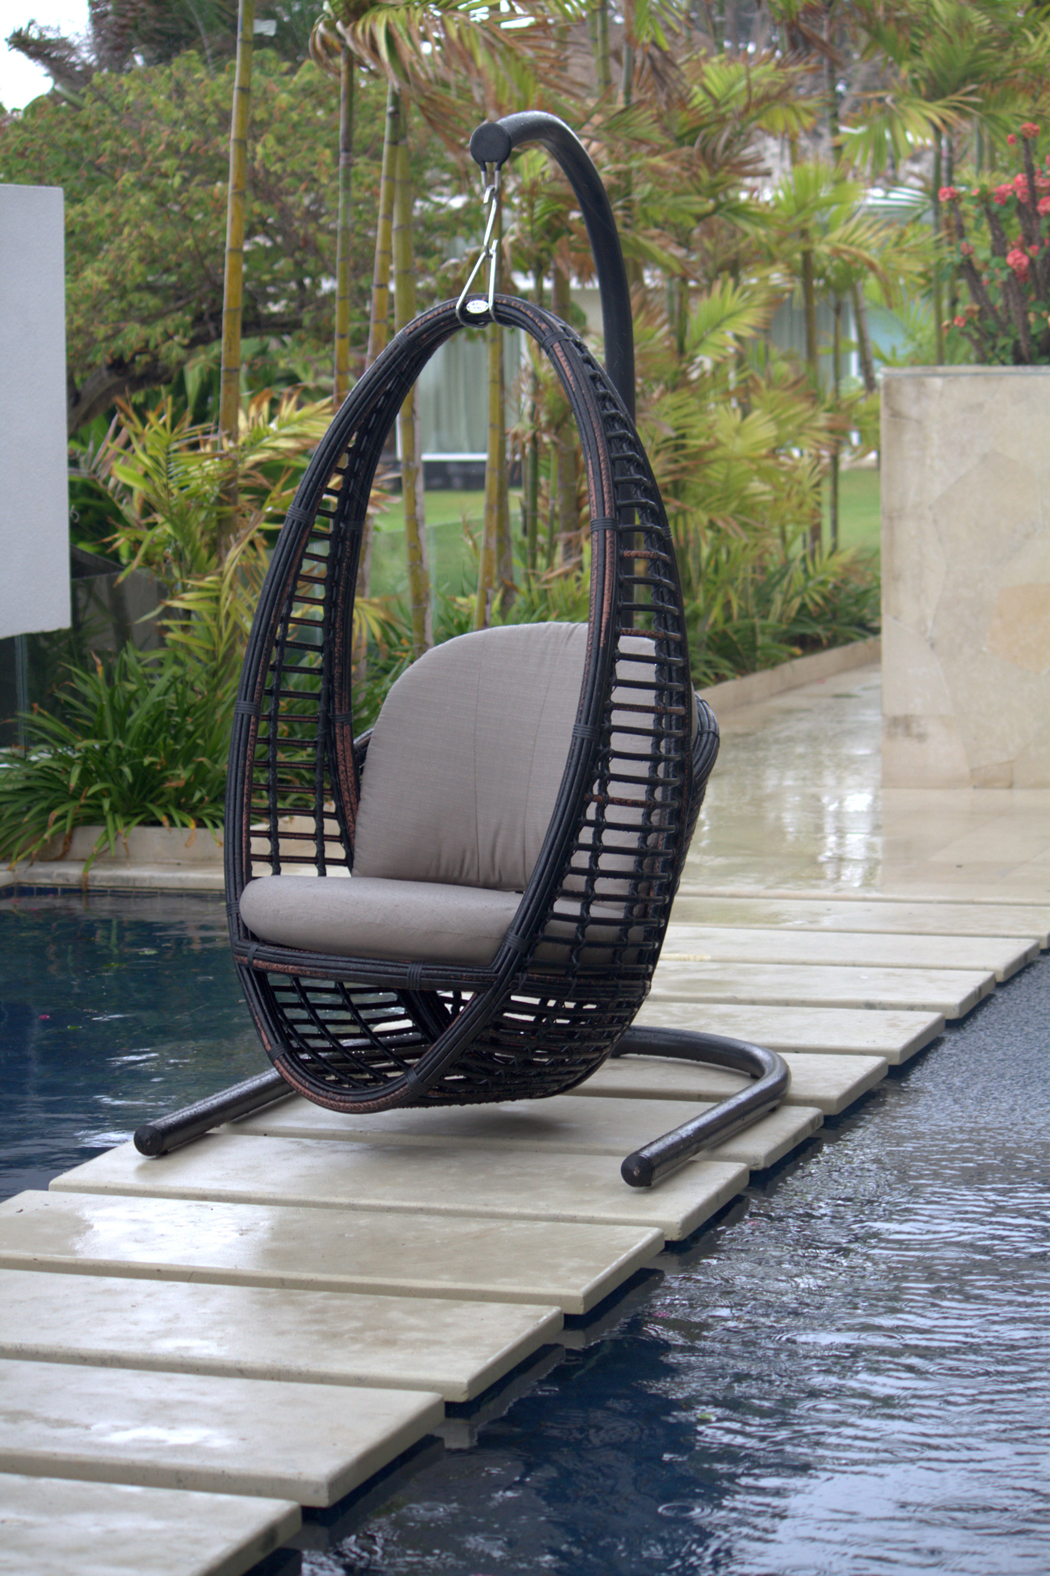 You Might Like These Other Outdoor Furniture Models